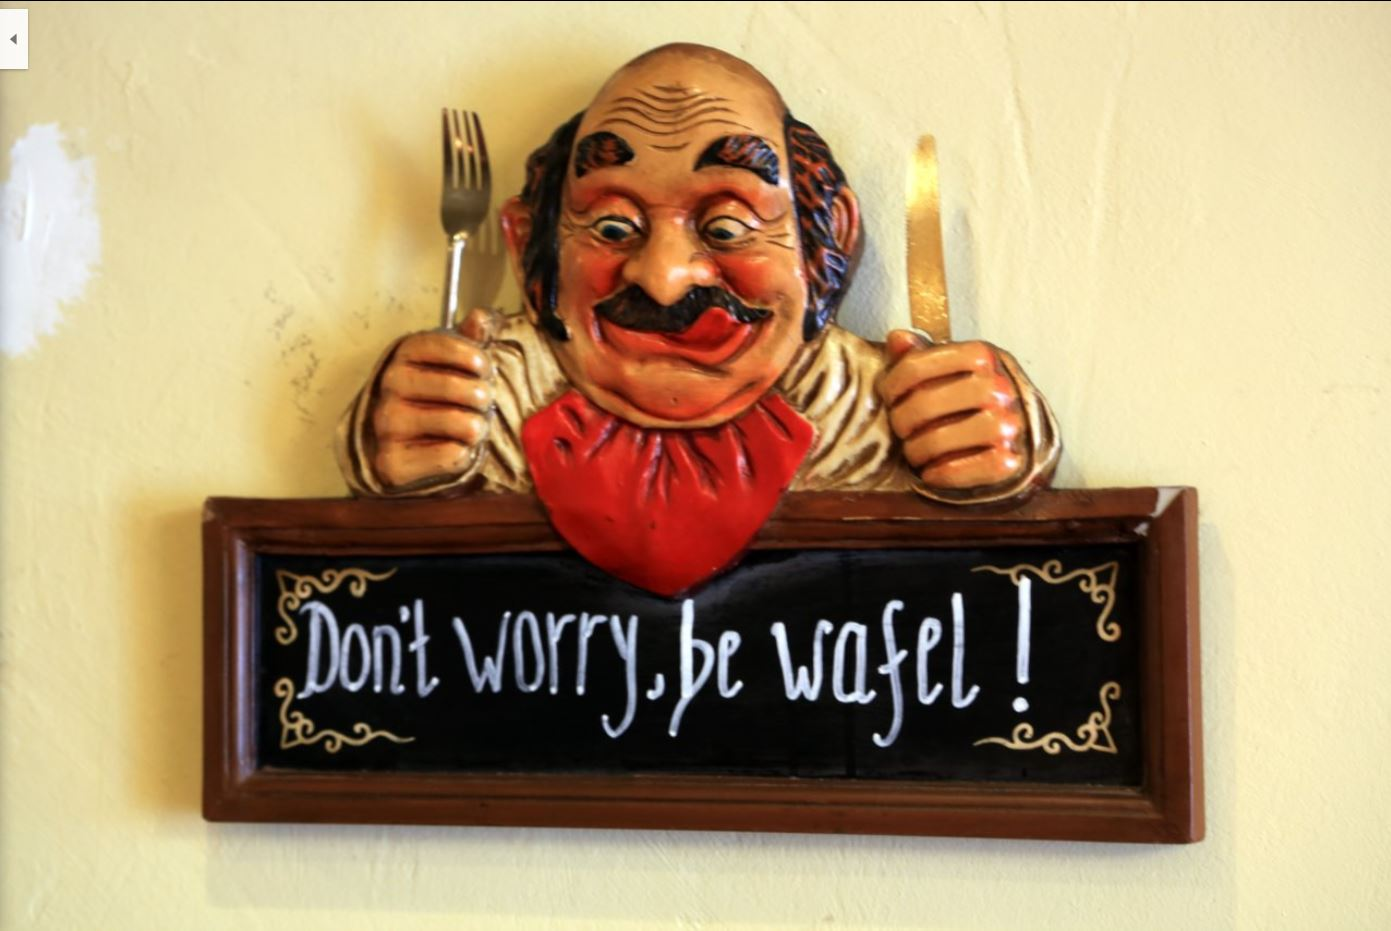 dont worry, be wafel